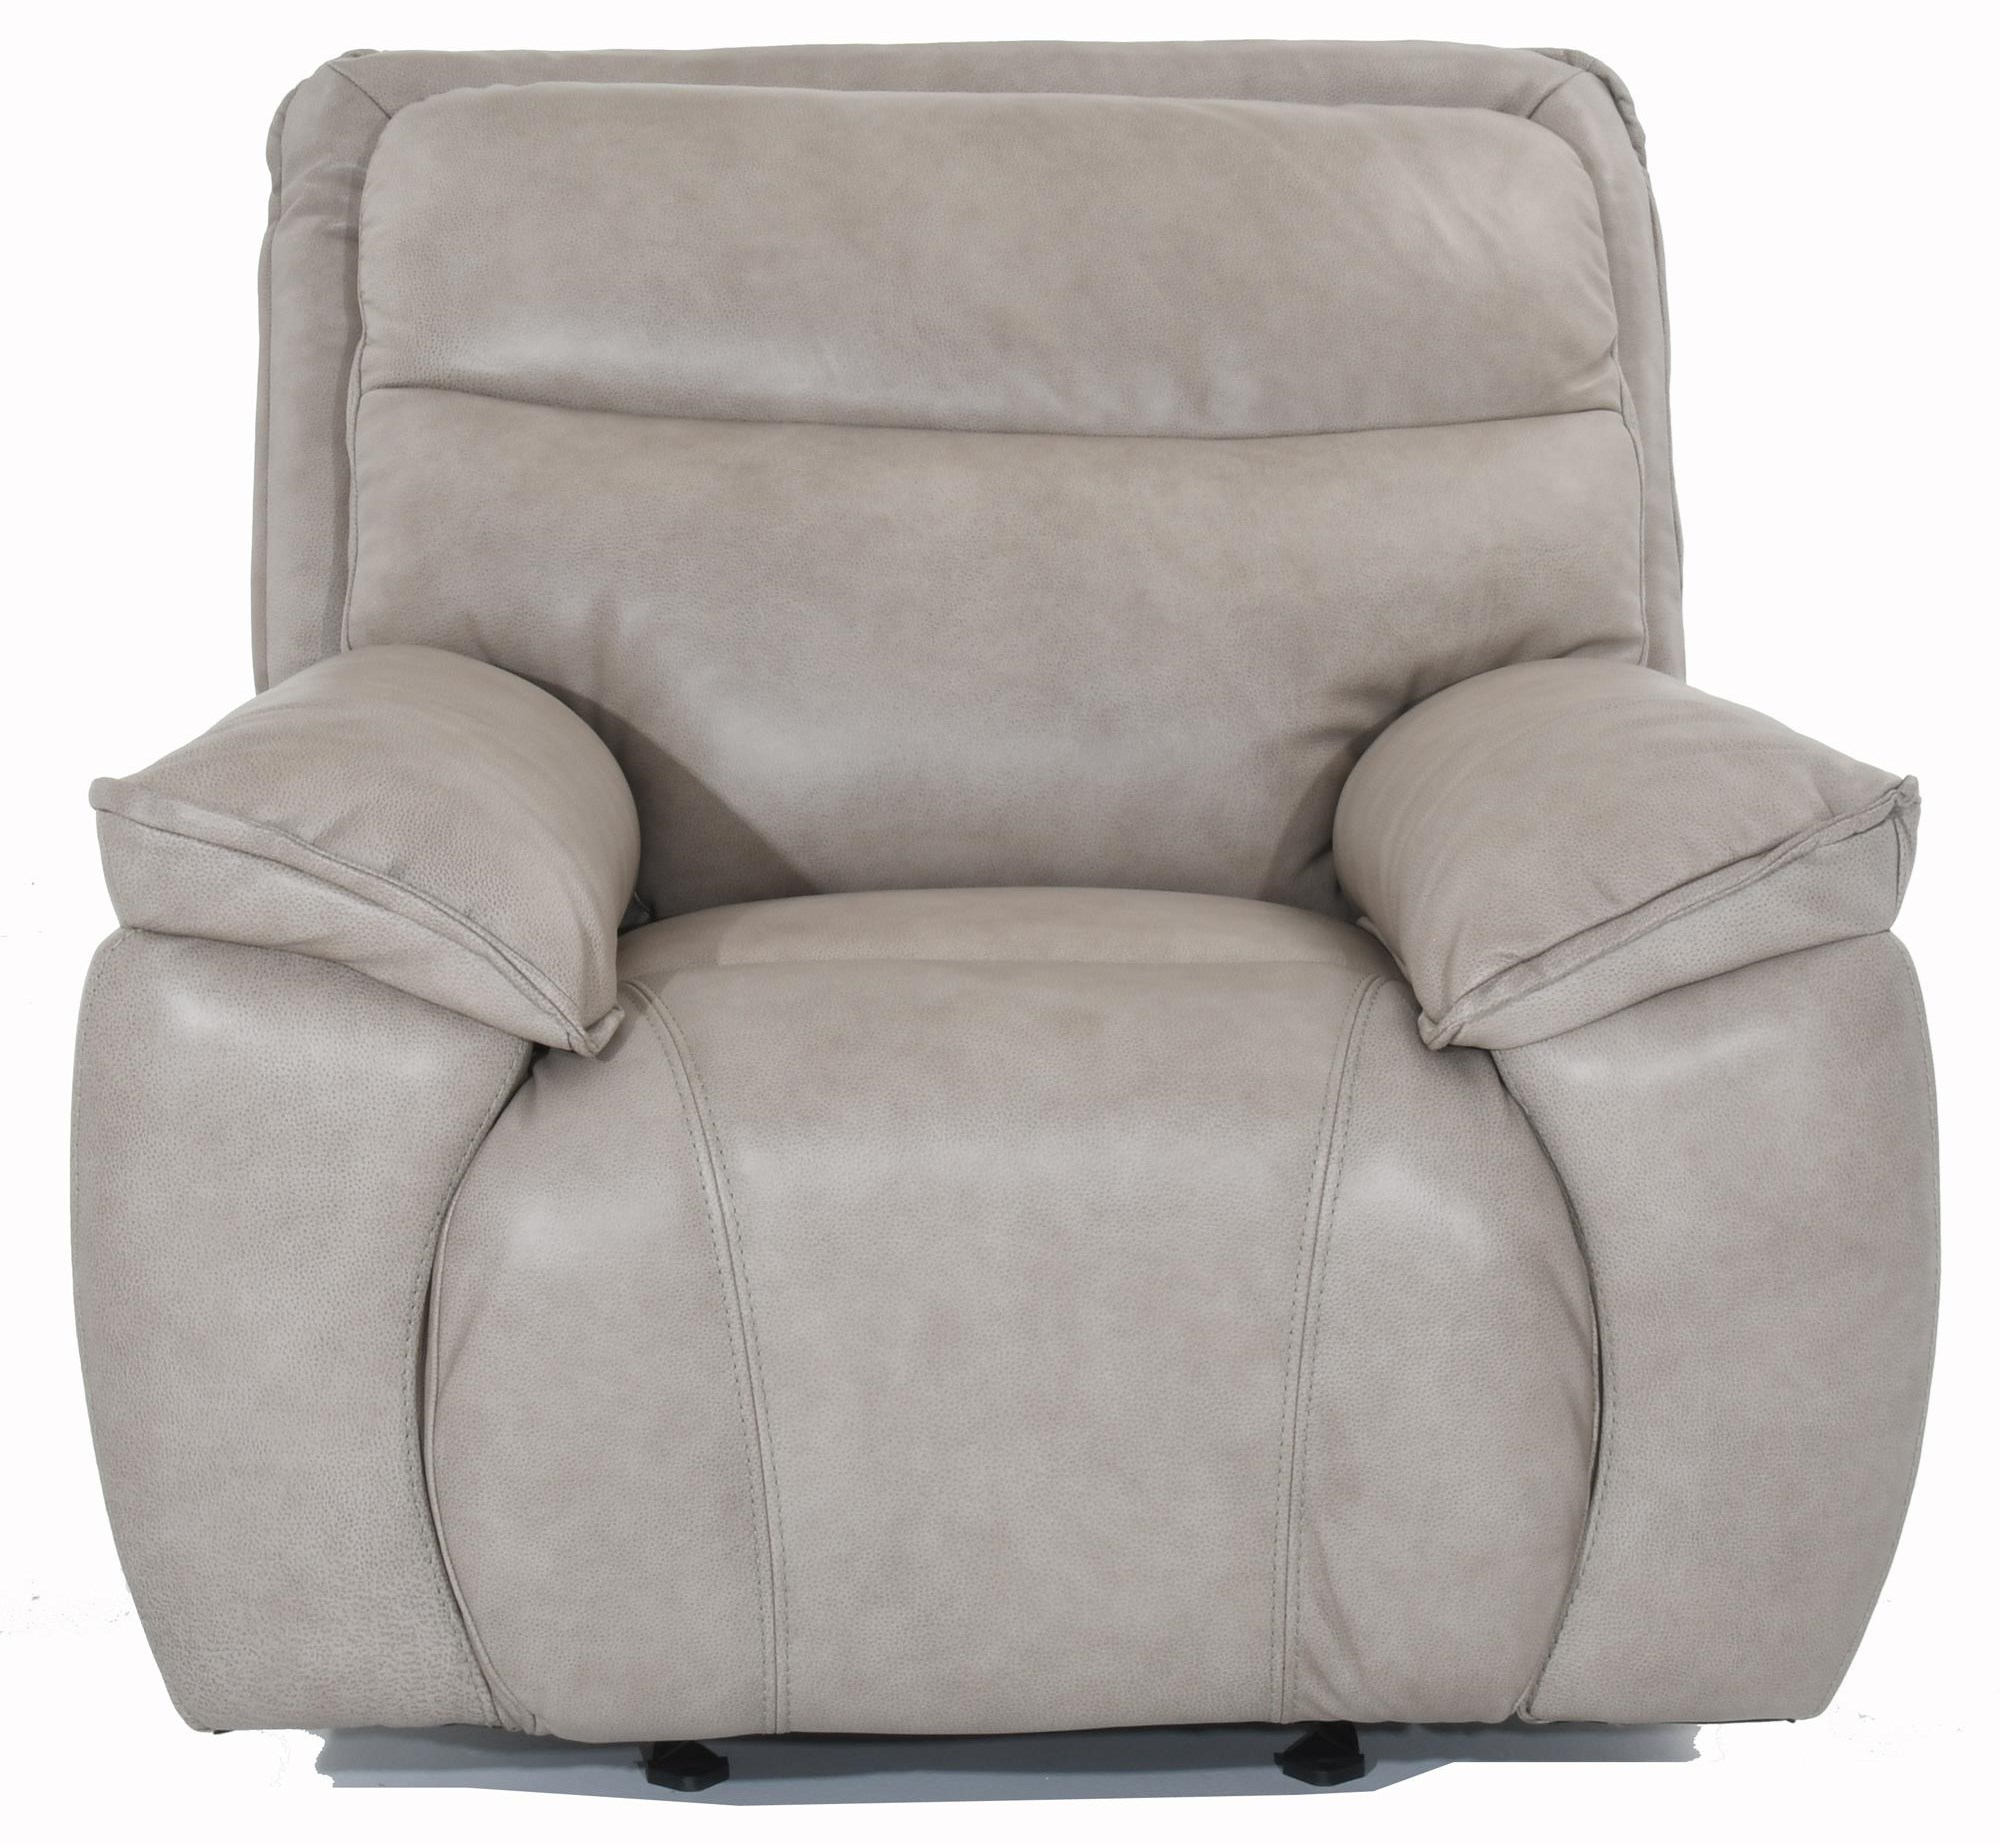 E1578 Power Headrest Recliner by Futura Leather at Baer's Furniture